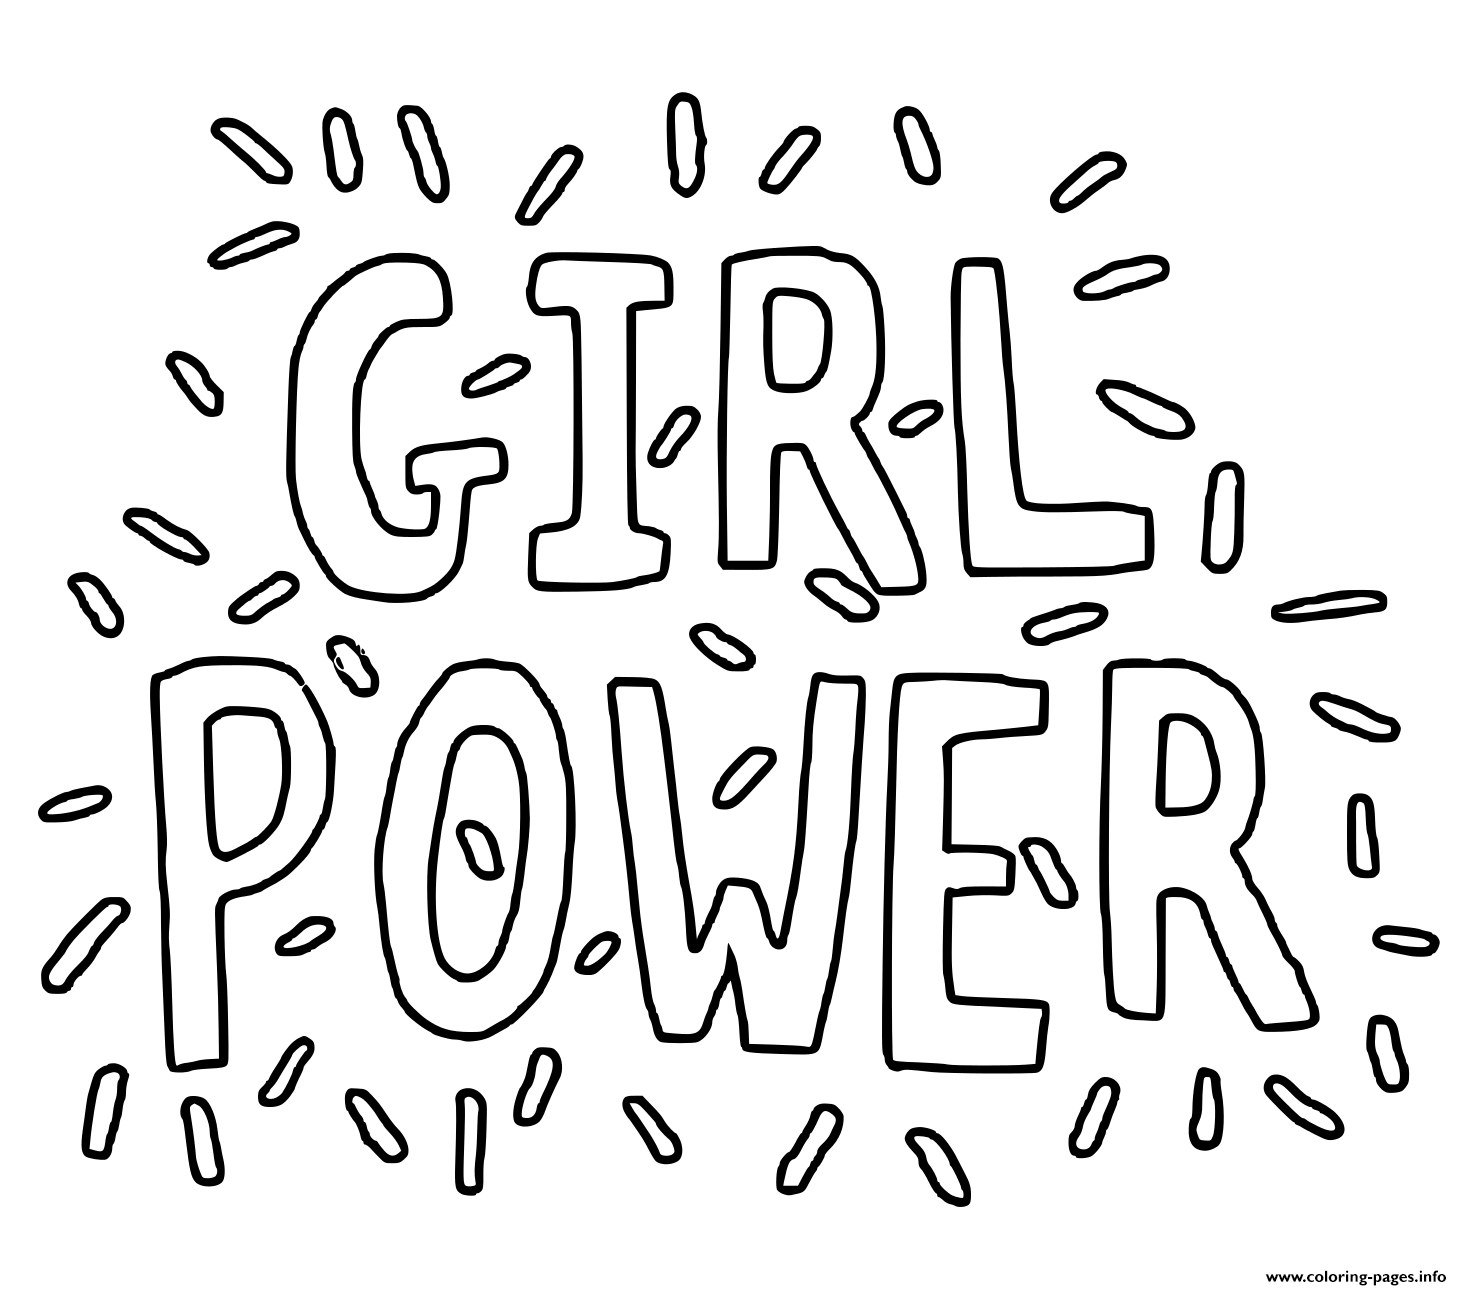 girl power coloring book coloring books girl power coloring book power coloring book girl